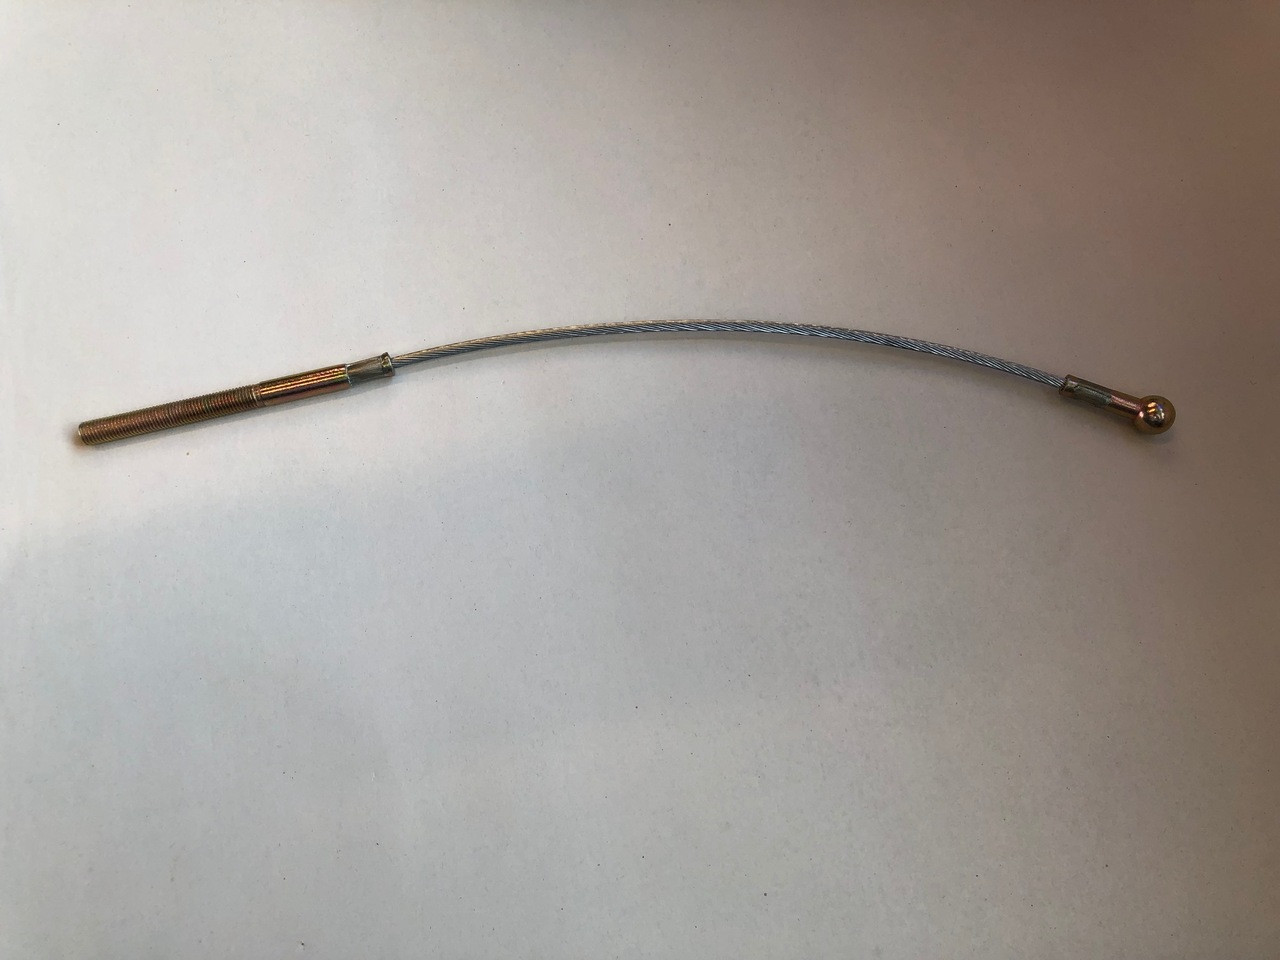 "Clutch Control Cable, 13 5/8"" Long"